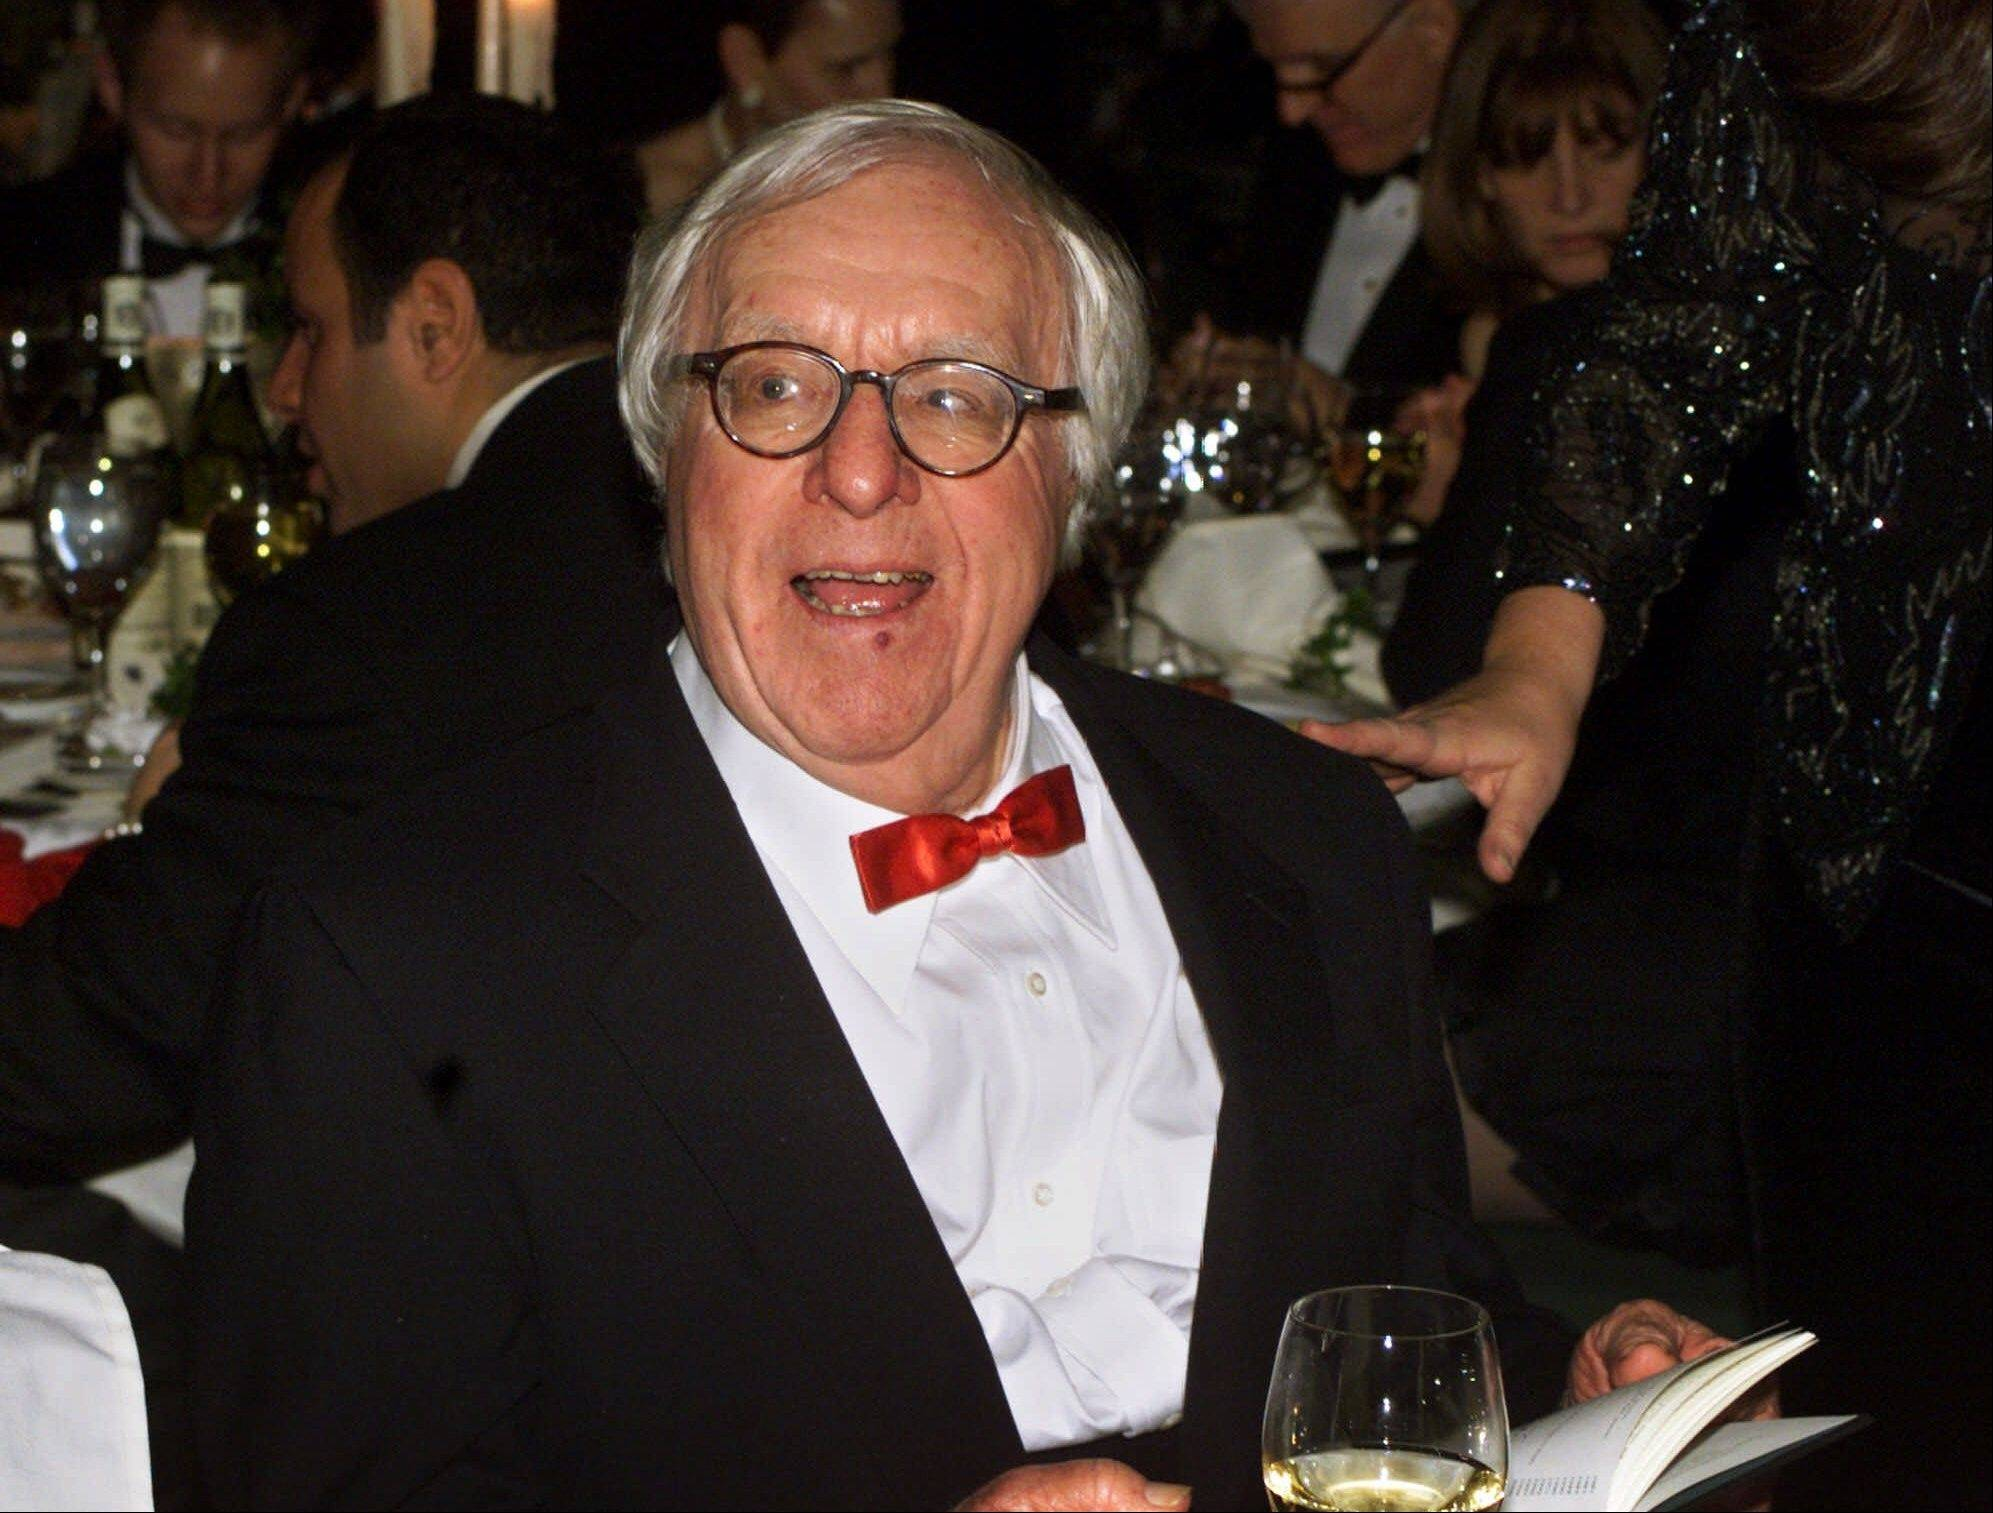 Science fiction writer Ray Bradbury speaks in 2000 at the National Book Awards in New York, where he was given the Medal for Distinguished Contribution to American Letters. Bradbury, who wrote everything from science fiction and mystery to humor, died Tuesday at age 91.